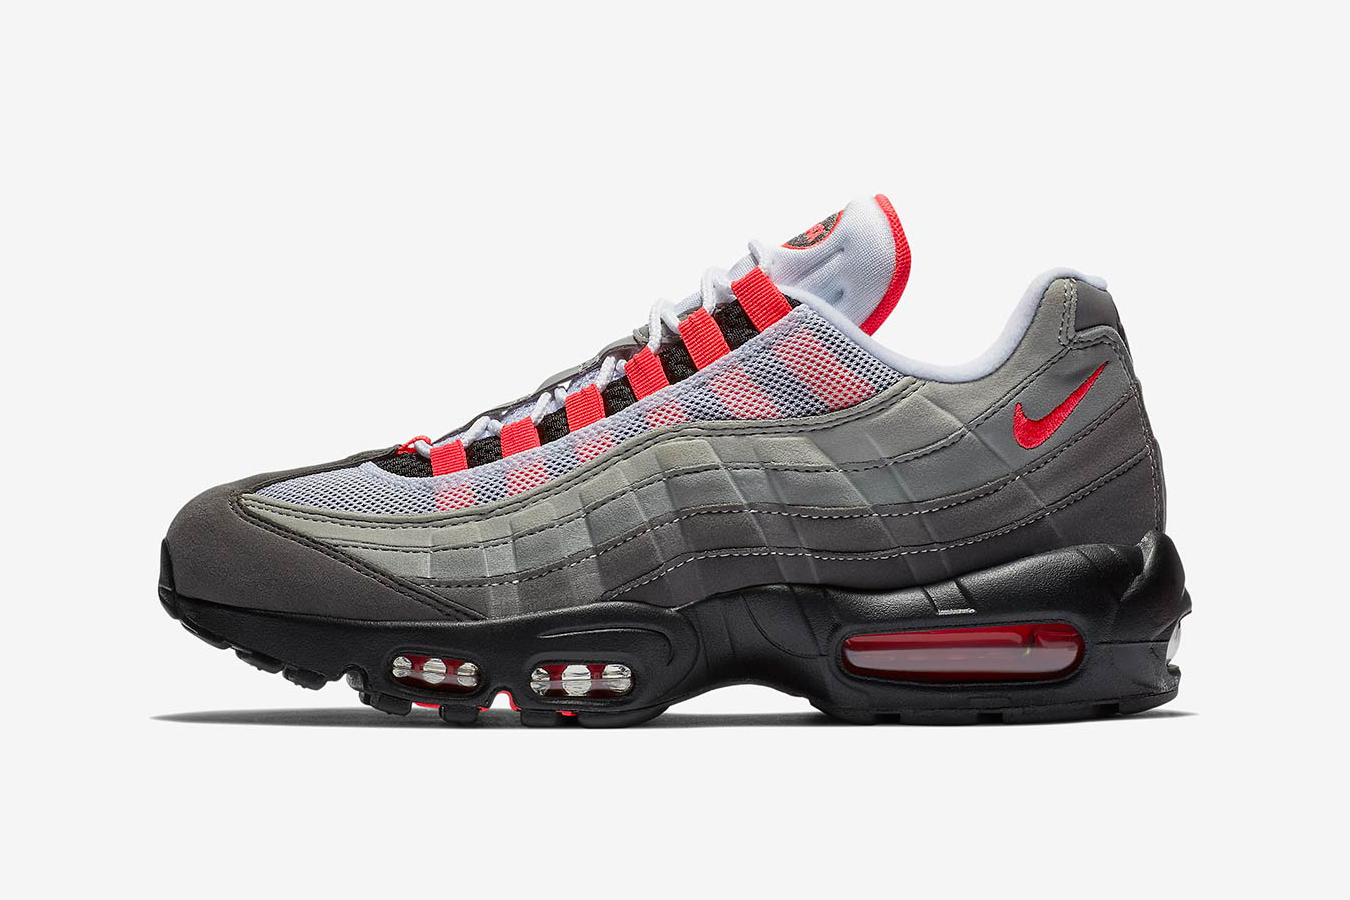 6cba8b4c382768 Nike Air Max 95 OG Grey Solar Red Release Date